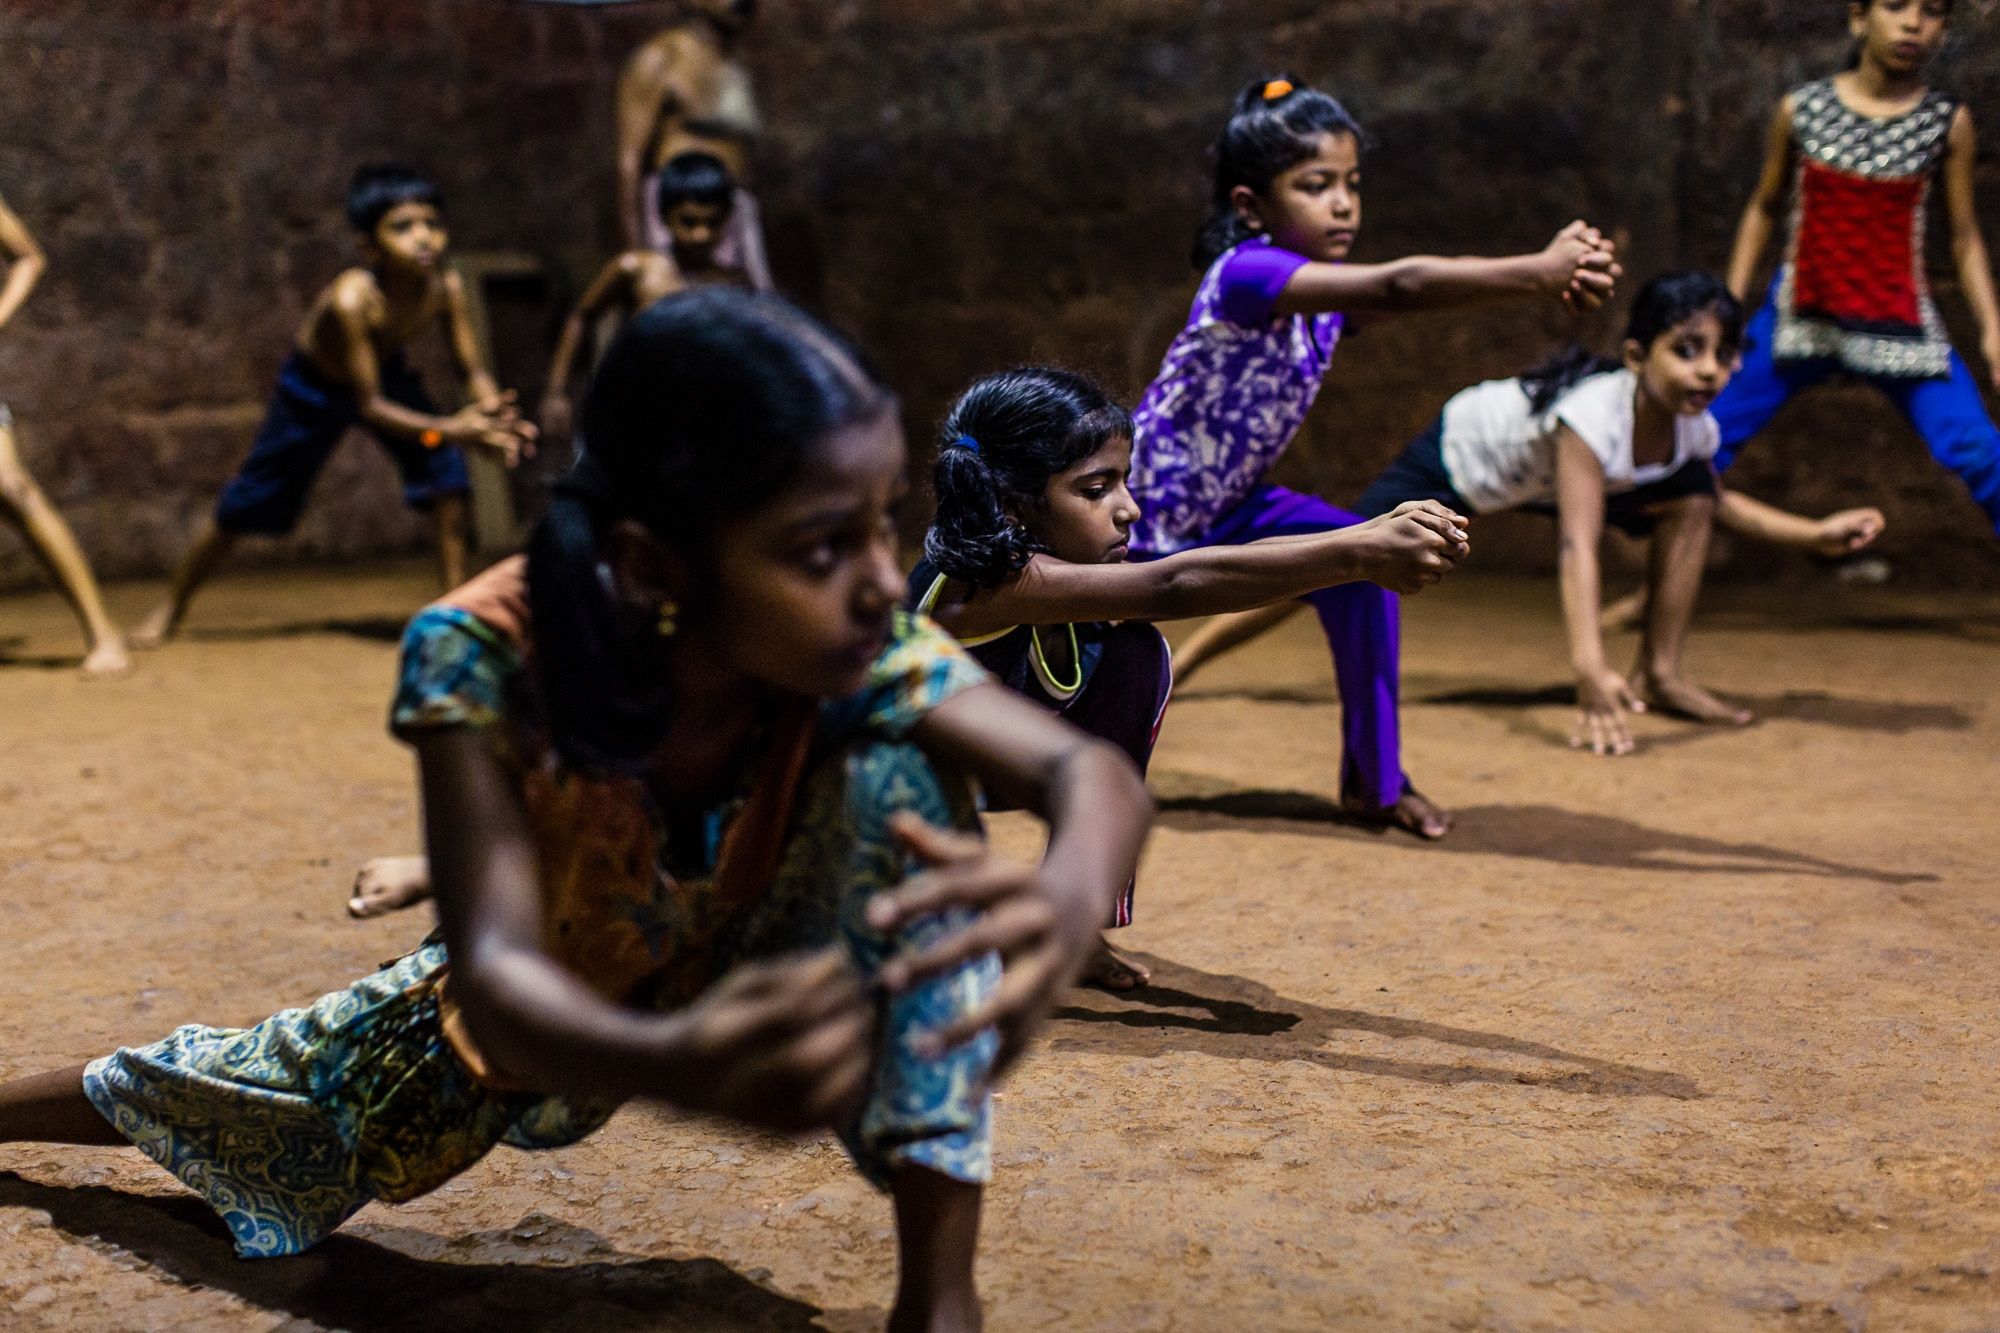 Vatakara, Kerala, INDIA - September 17, 2017: Female students practice 'Kalaripayattu' techniques. Since several rape cases in India received extensive media coverage and triggered protests in 2012, more young women have begun training at the school and an increasing number of parents allow their girls to train Kalaripayattu. Nowadays, one third of Meenakshi's students are females aged between six and twenty-six.